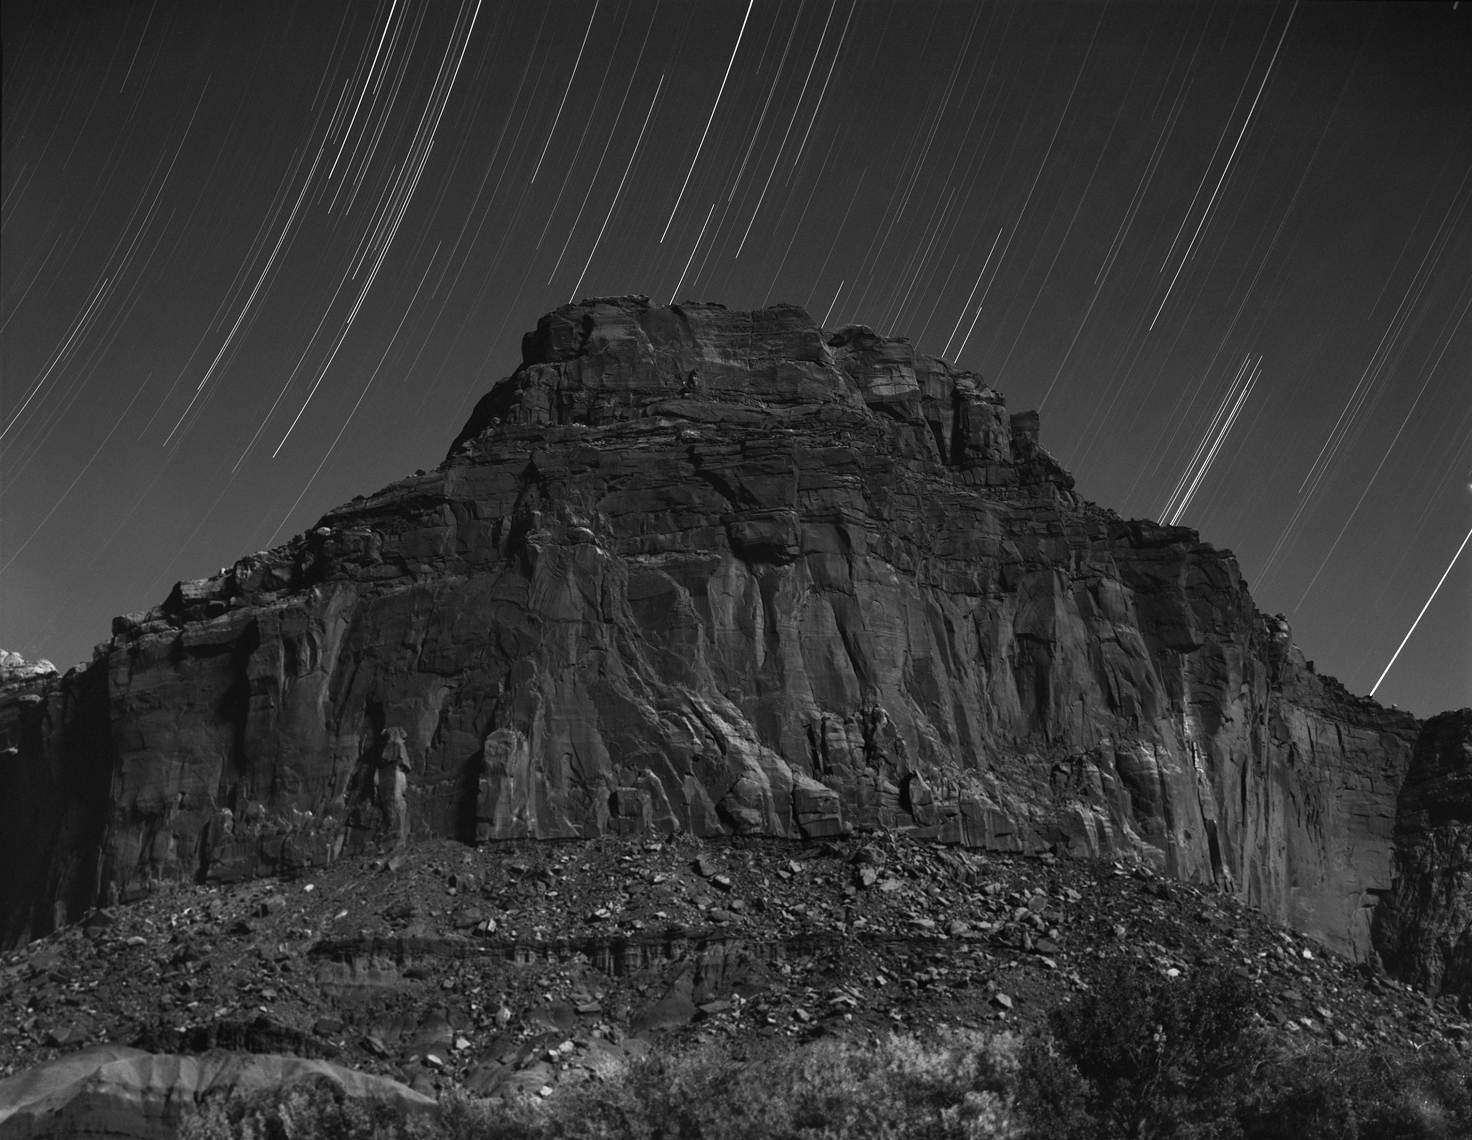 ZION AT NIGH